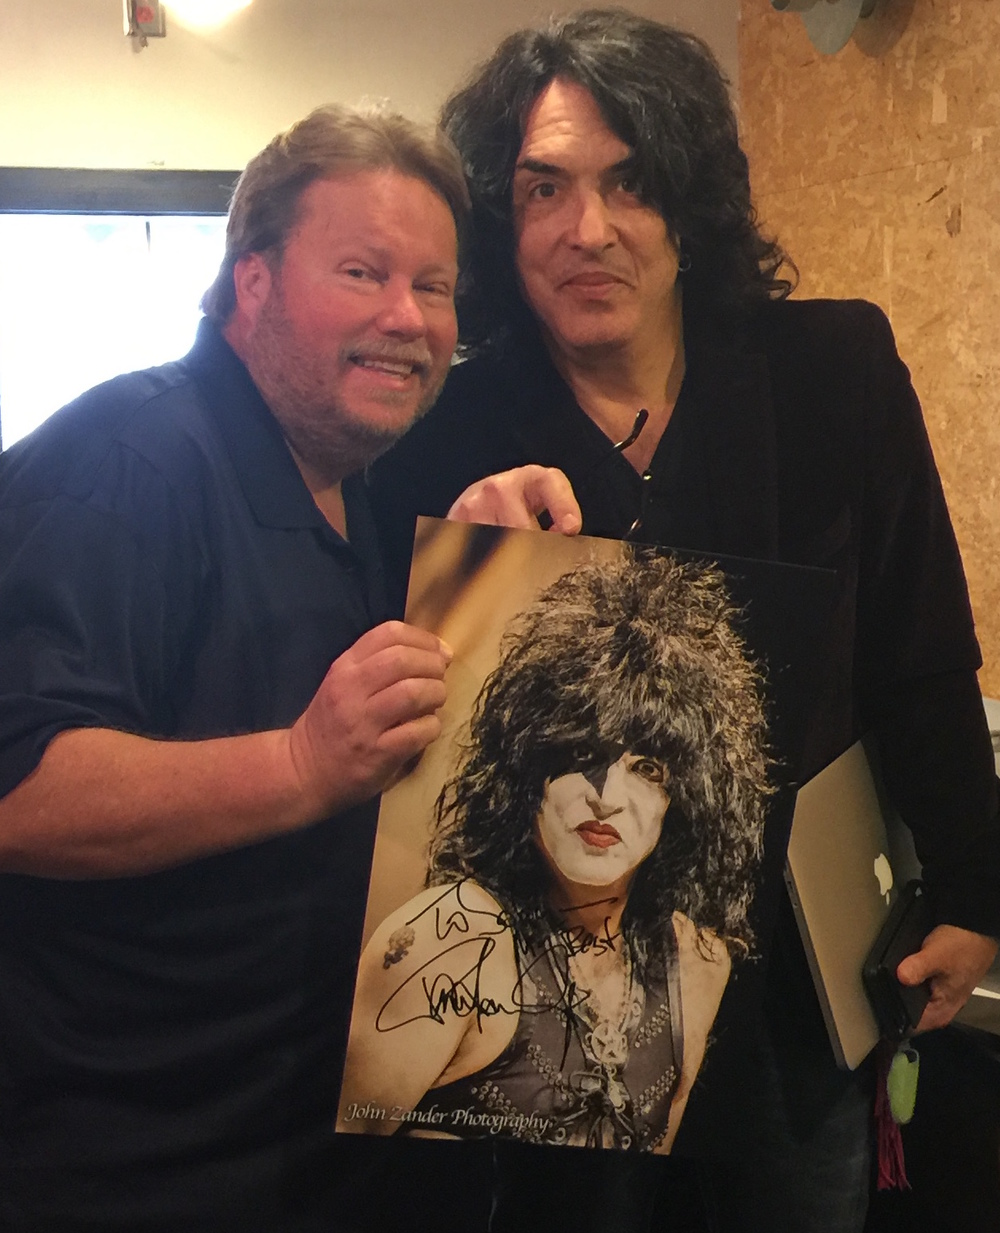 Me and Paul Stanley of KISS with a portrait I shot of him in full KISS make up.